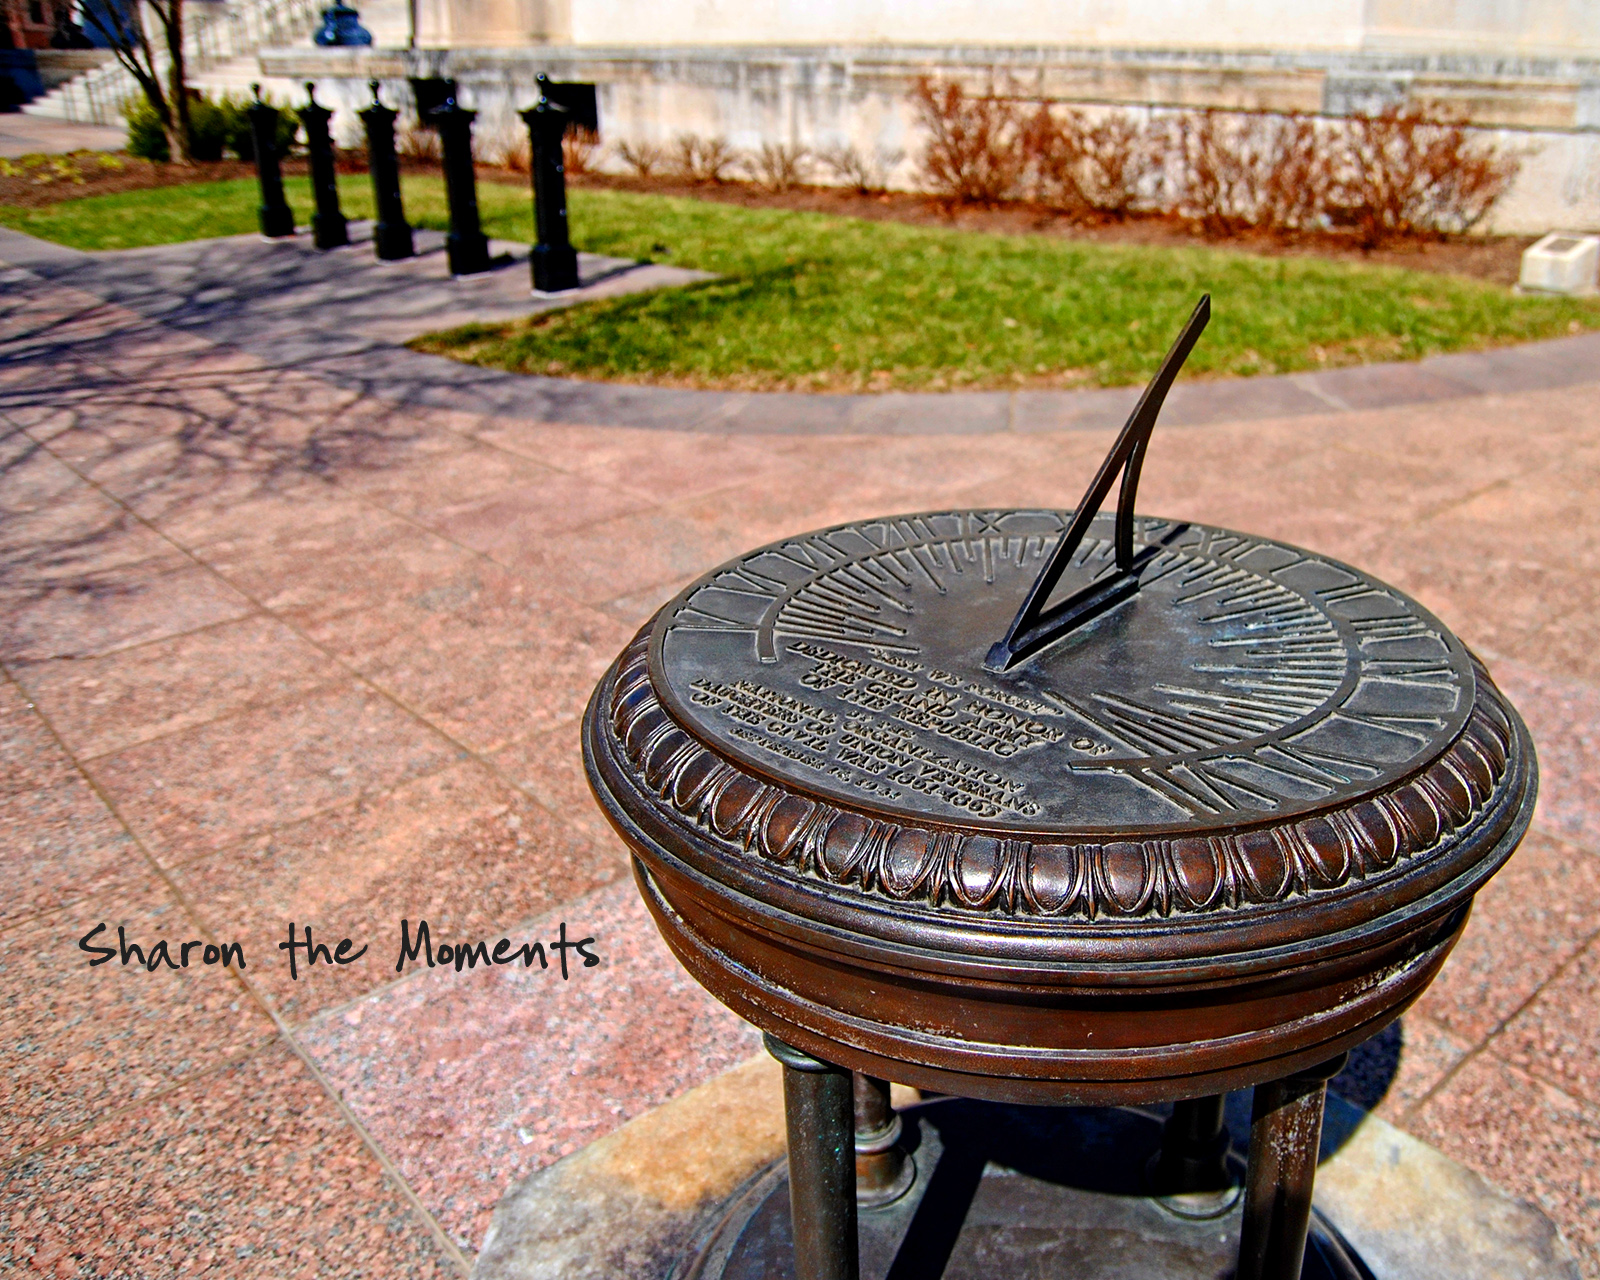 Monday Monday Spring Downtown Columbus Ohio Statehouse|Sharon the Moments blog